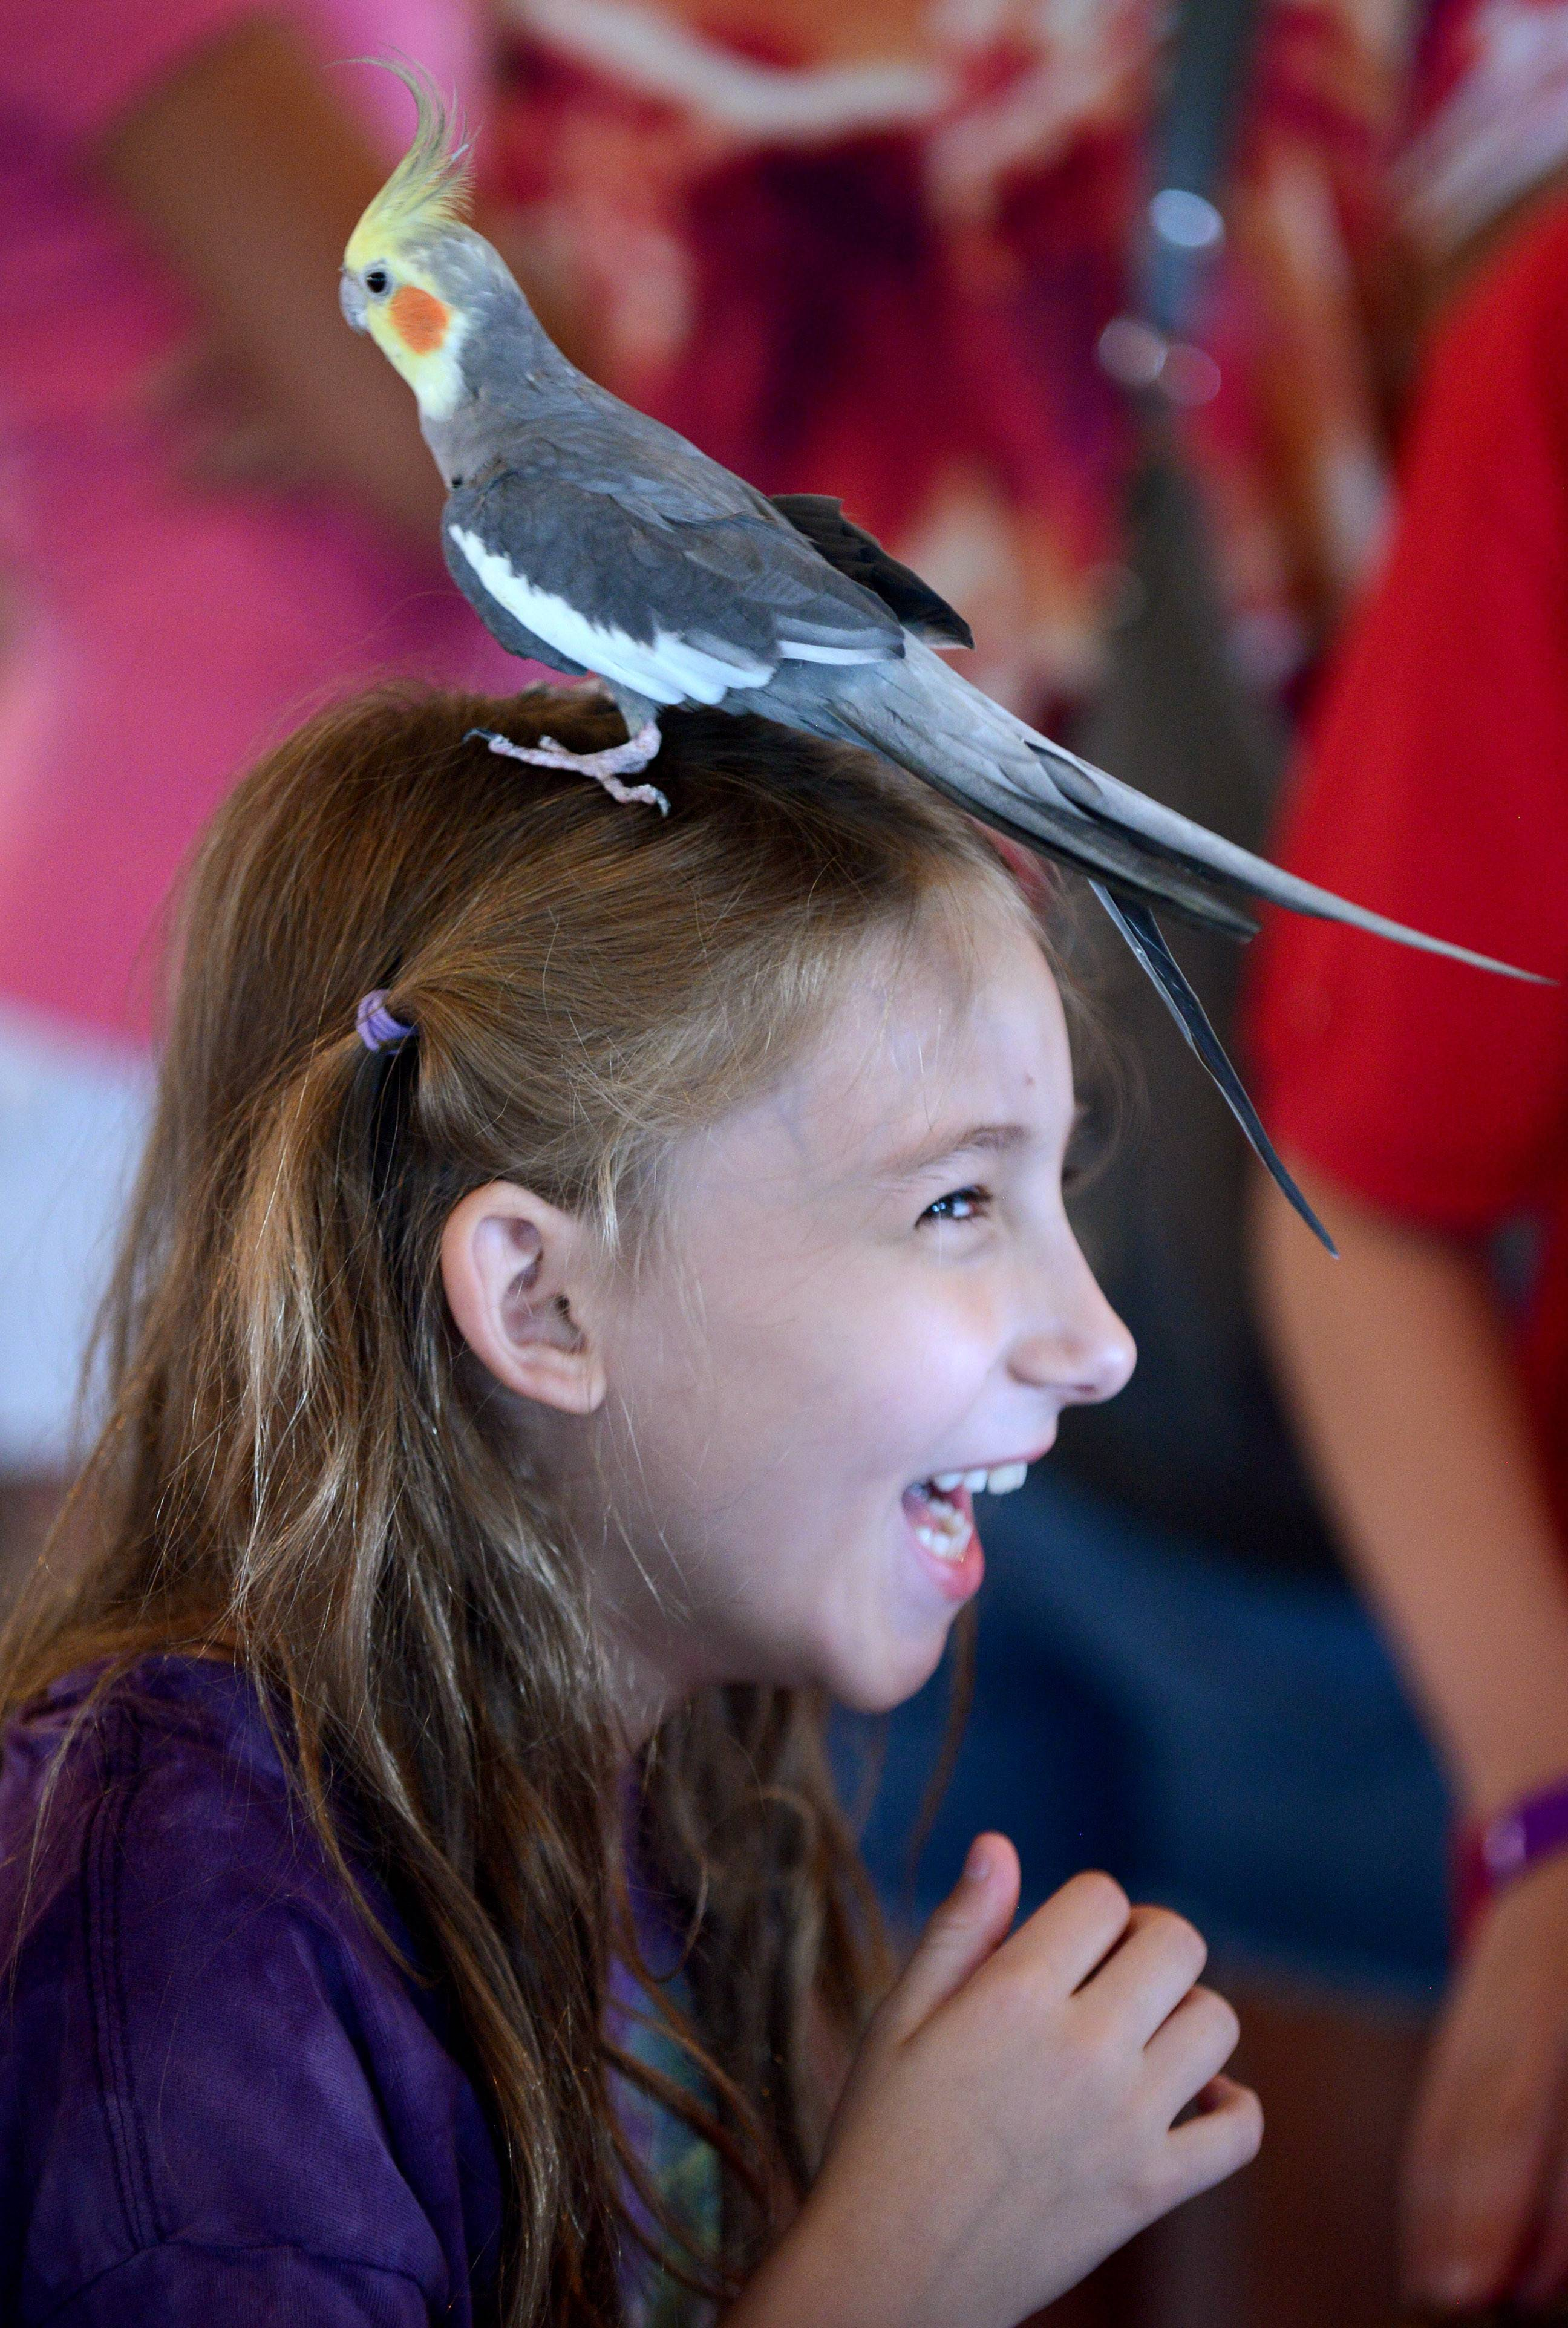 Amanda Gatsch, 8, of St. Charles squeals with delight as Riddle the cockatiel, owned by Dana Connell, 11, of St. Charles, perches on her head while he waits for his turn to be judged at the Kane County 4-H Small Pets show Tuesday at the Kane County Fairgrounds in St. Charles. Riddle, 13, was adopted from a rescue by Dana and both were making their first appearance at the show. They later won a blue ribbon and grand champion in their category. Dana is a new member of the A Bit More 4-H Club based in Hampshire.